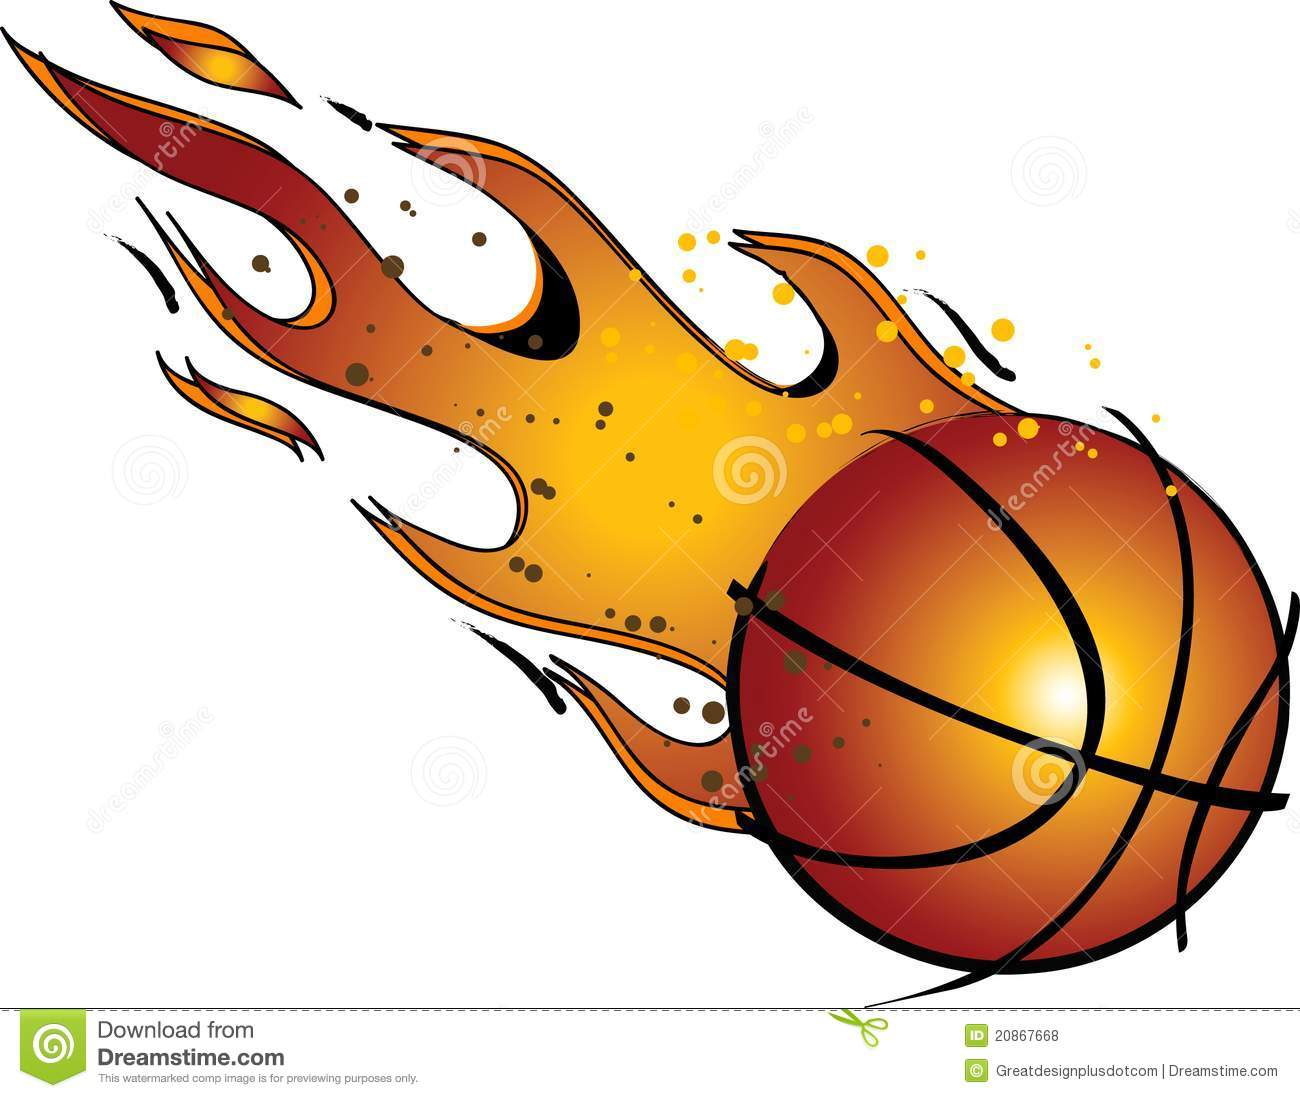 Clip Art Basketball Images Clip Art bouncing basketball clipart kid flaming vector clip art royalty free stock photos